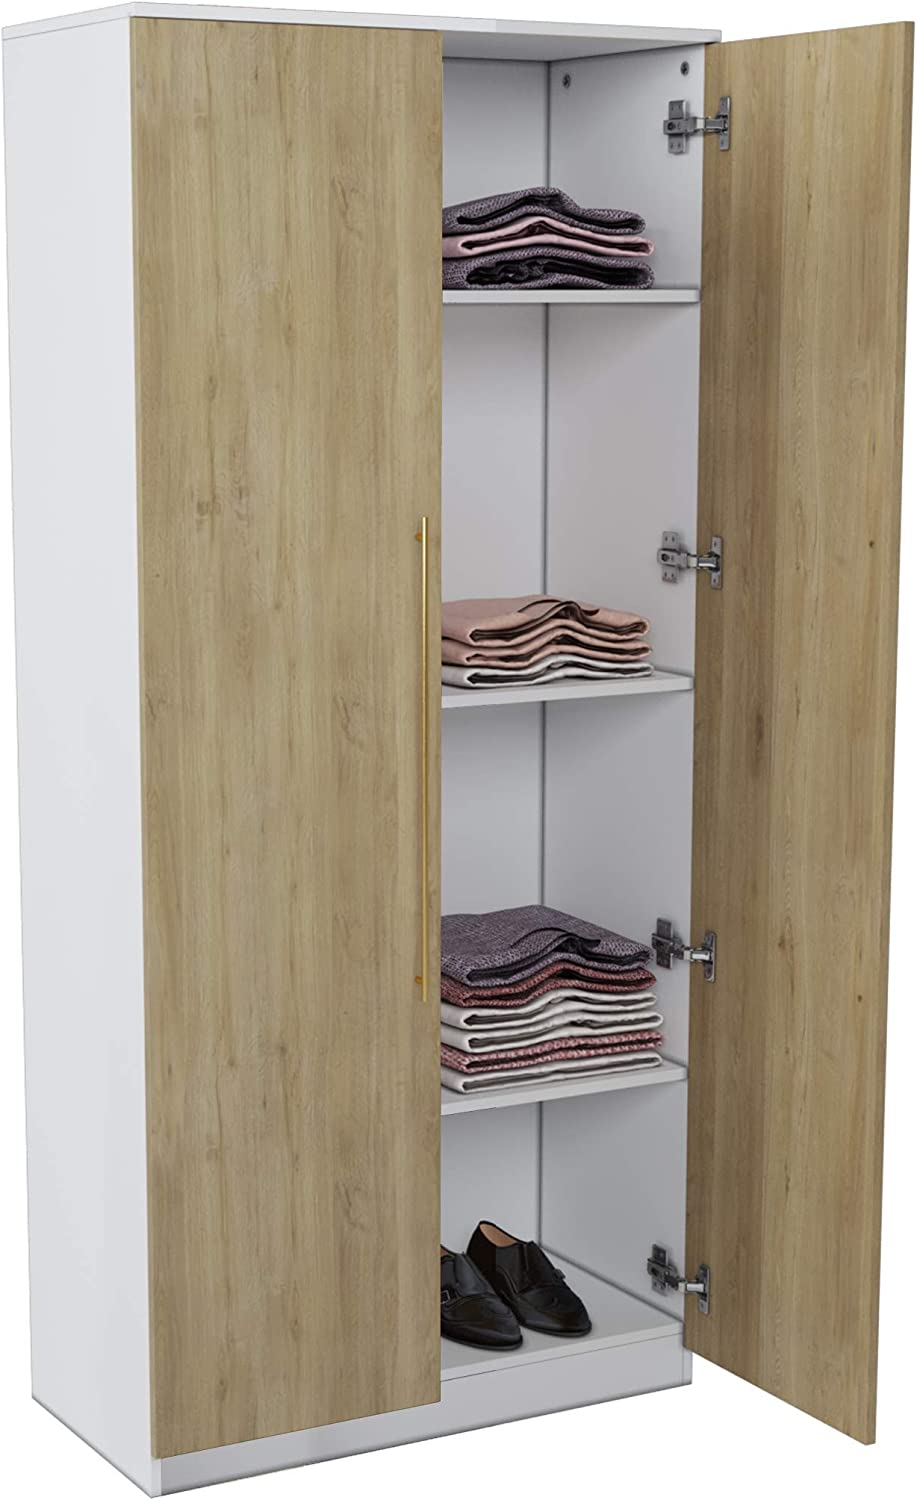 Modena Storage Cabinet and Armoire - Cabinet Storage with Customizable or Detachable Shelf - (Beige Oak/White)